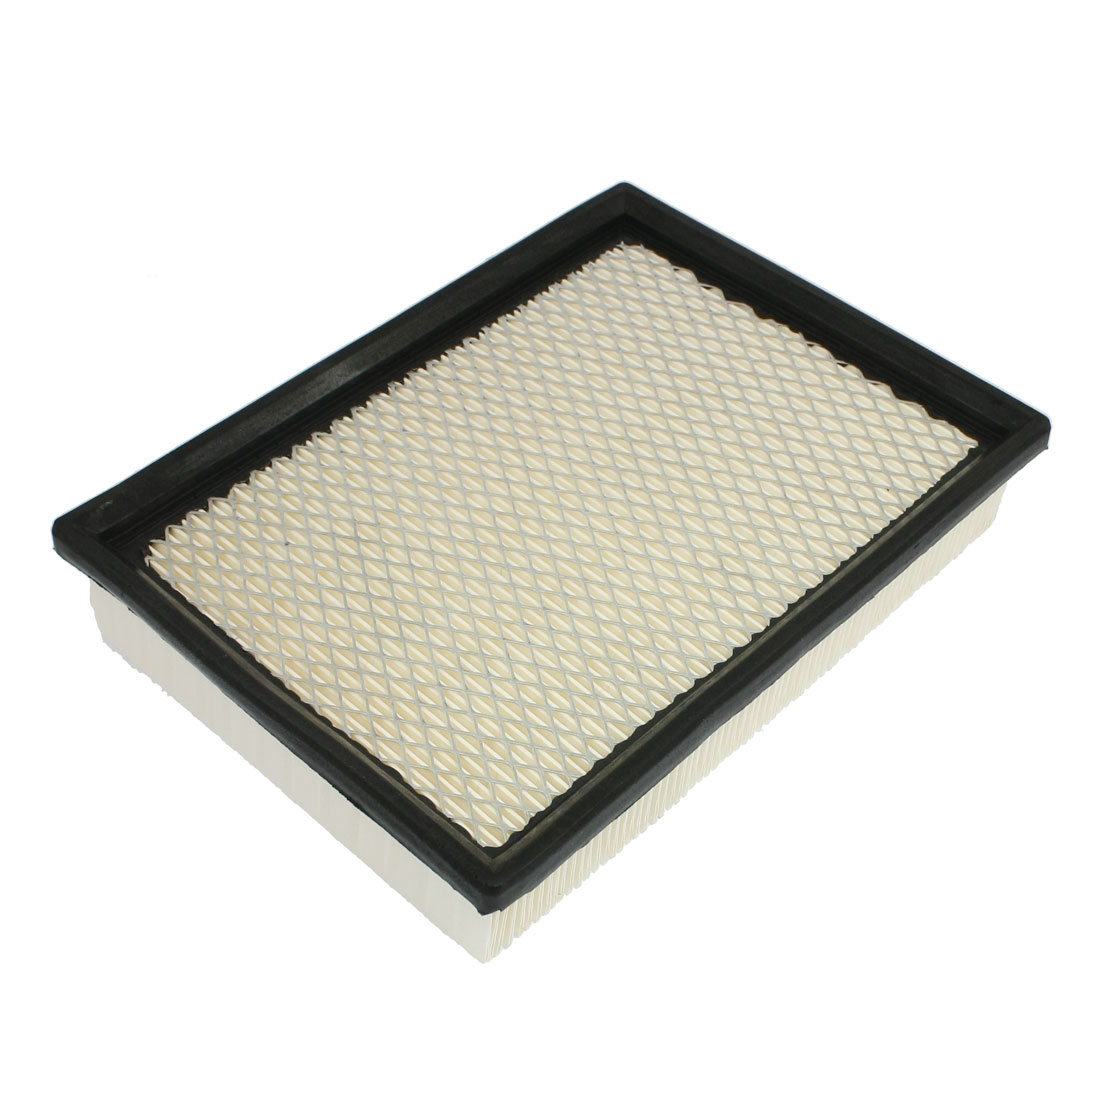 Black Beige Filter Paper Car Air Filter for Buick Century Regal